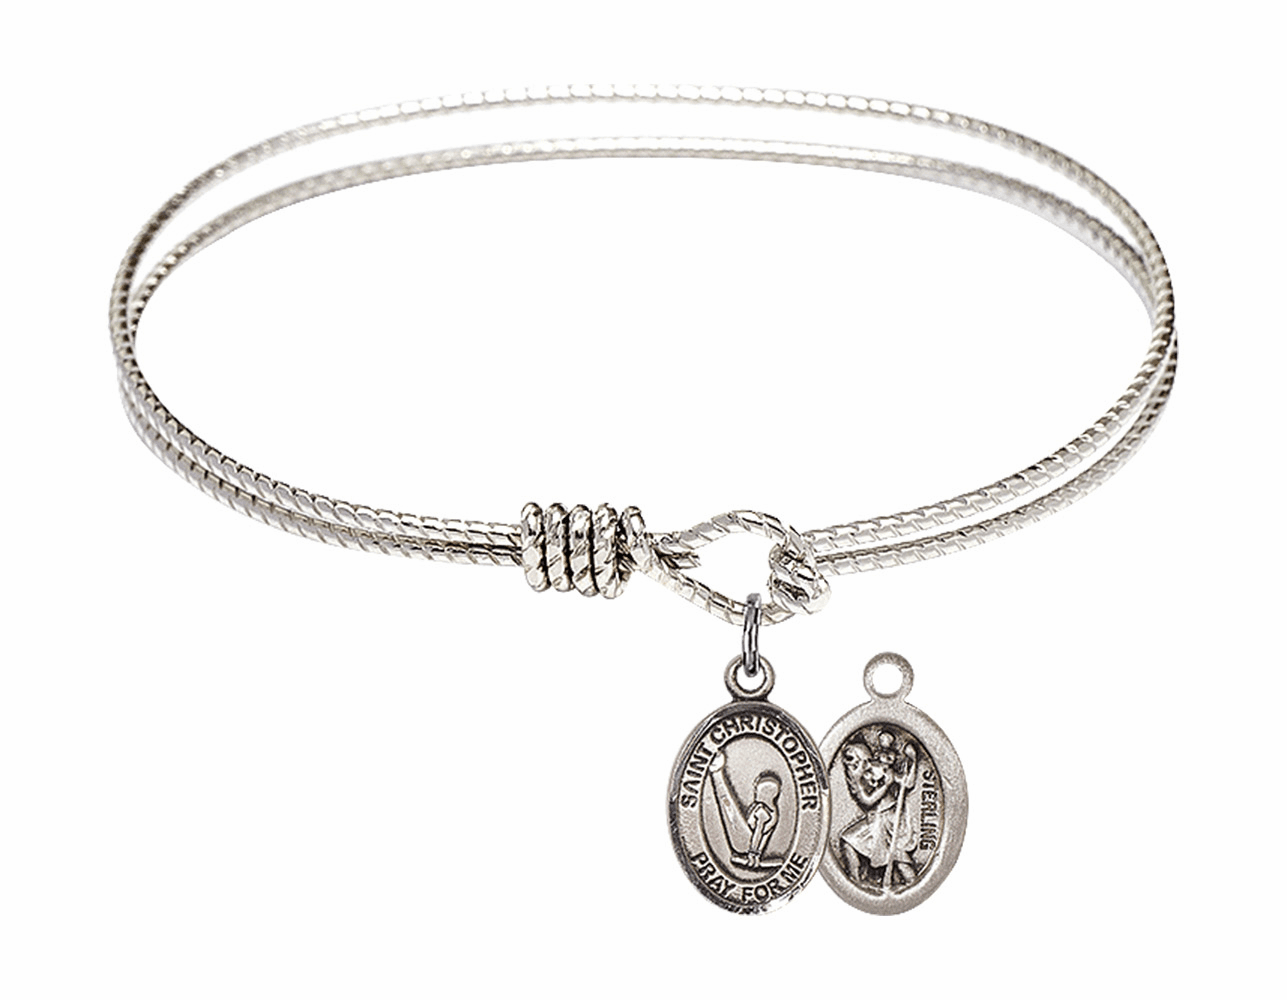 Twist Round Eye Hook St Christopher Gymnastics Bangle Charm Bracelet by Bliss